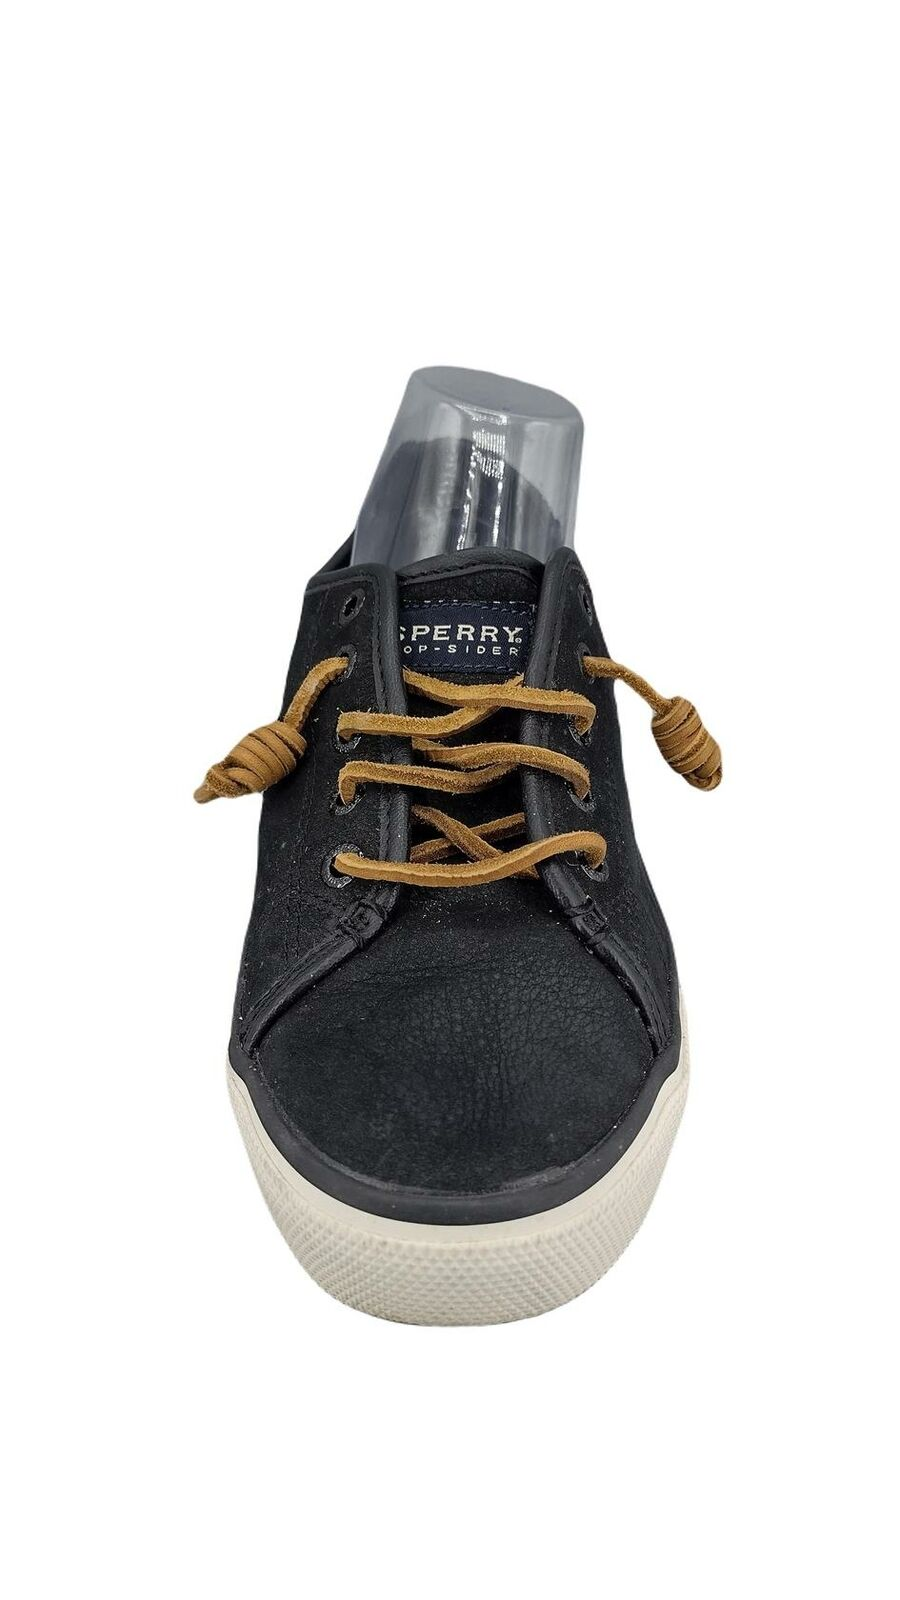 Sperry Women's Seacoast Fashion Sneaker,Black Leather, Rawhide Laces, 9.5 M US